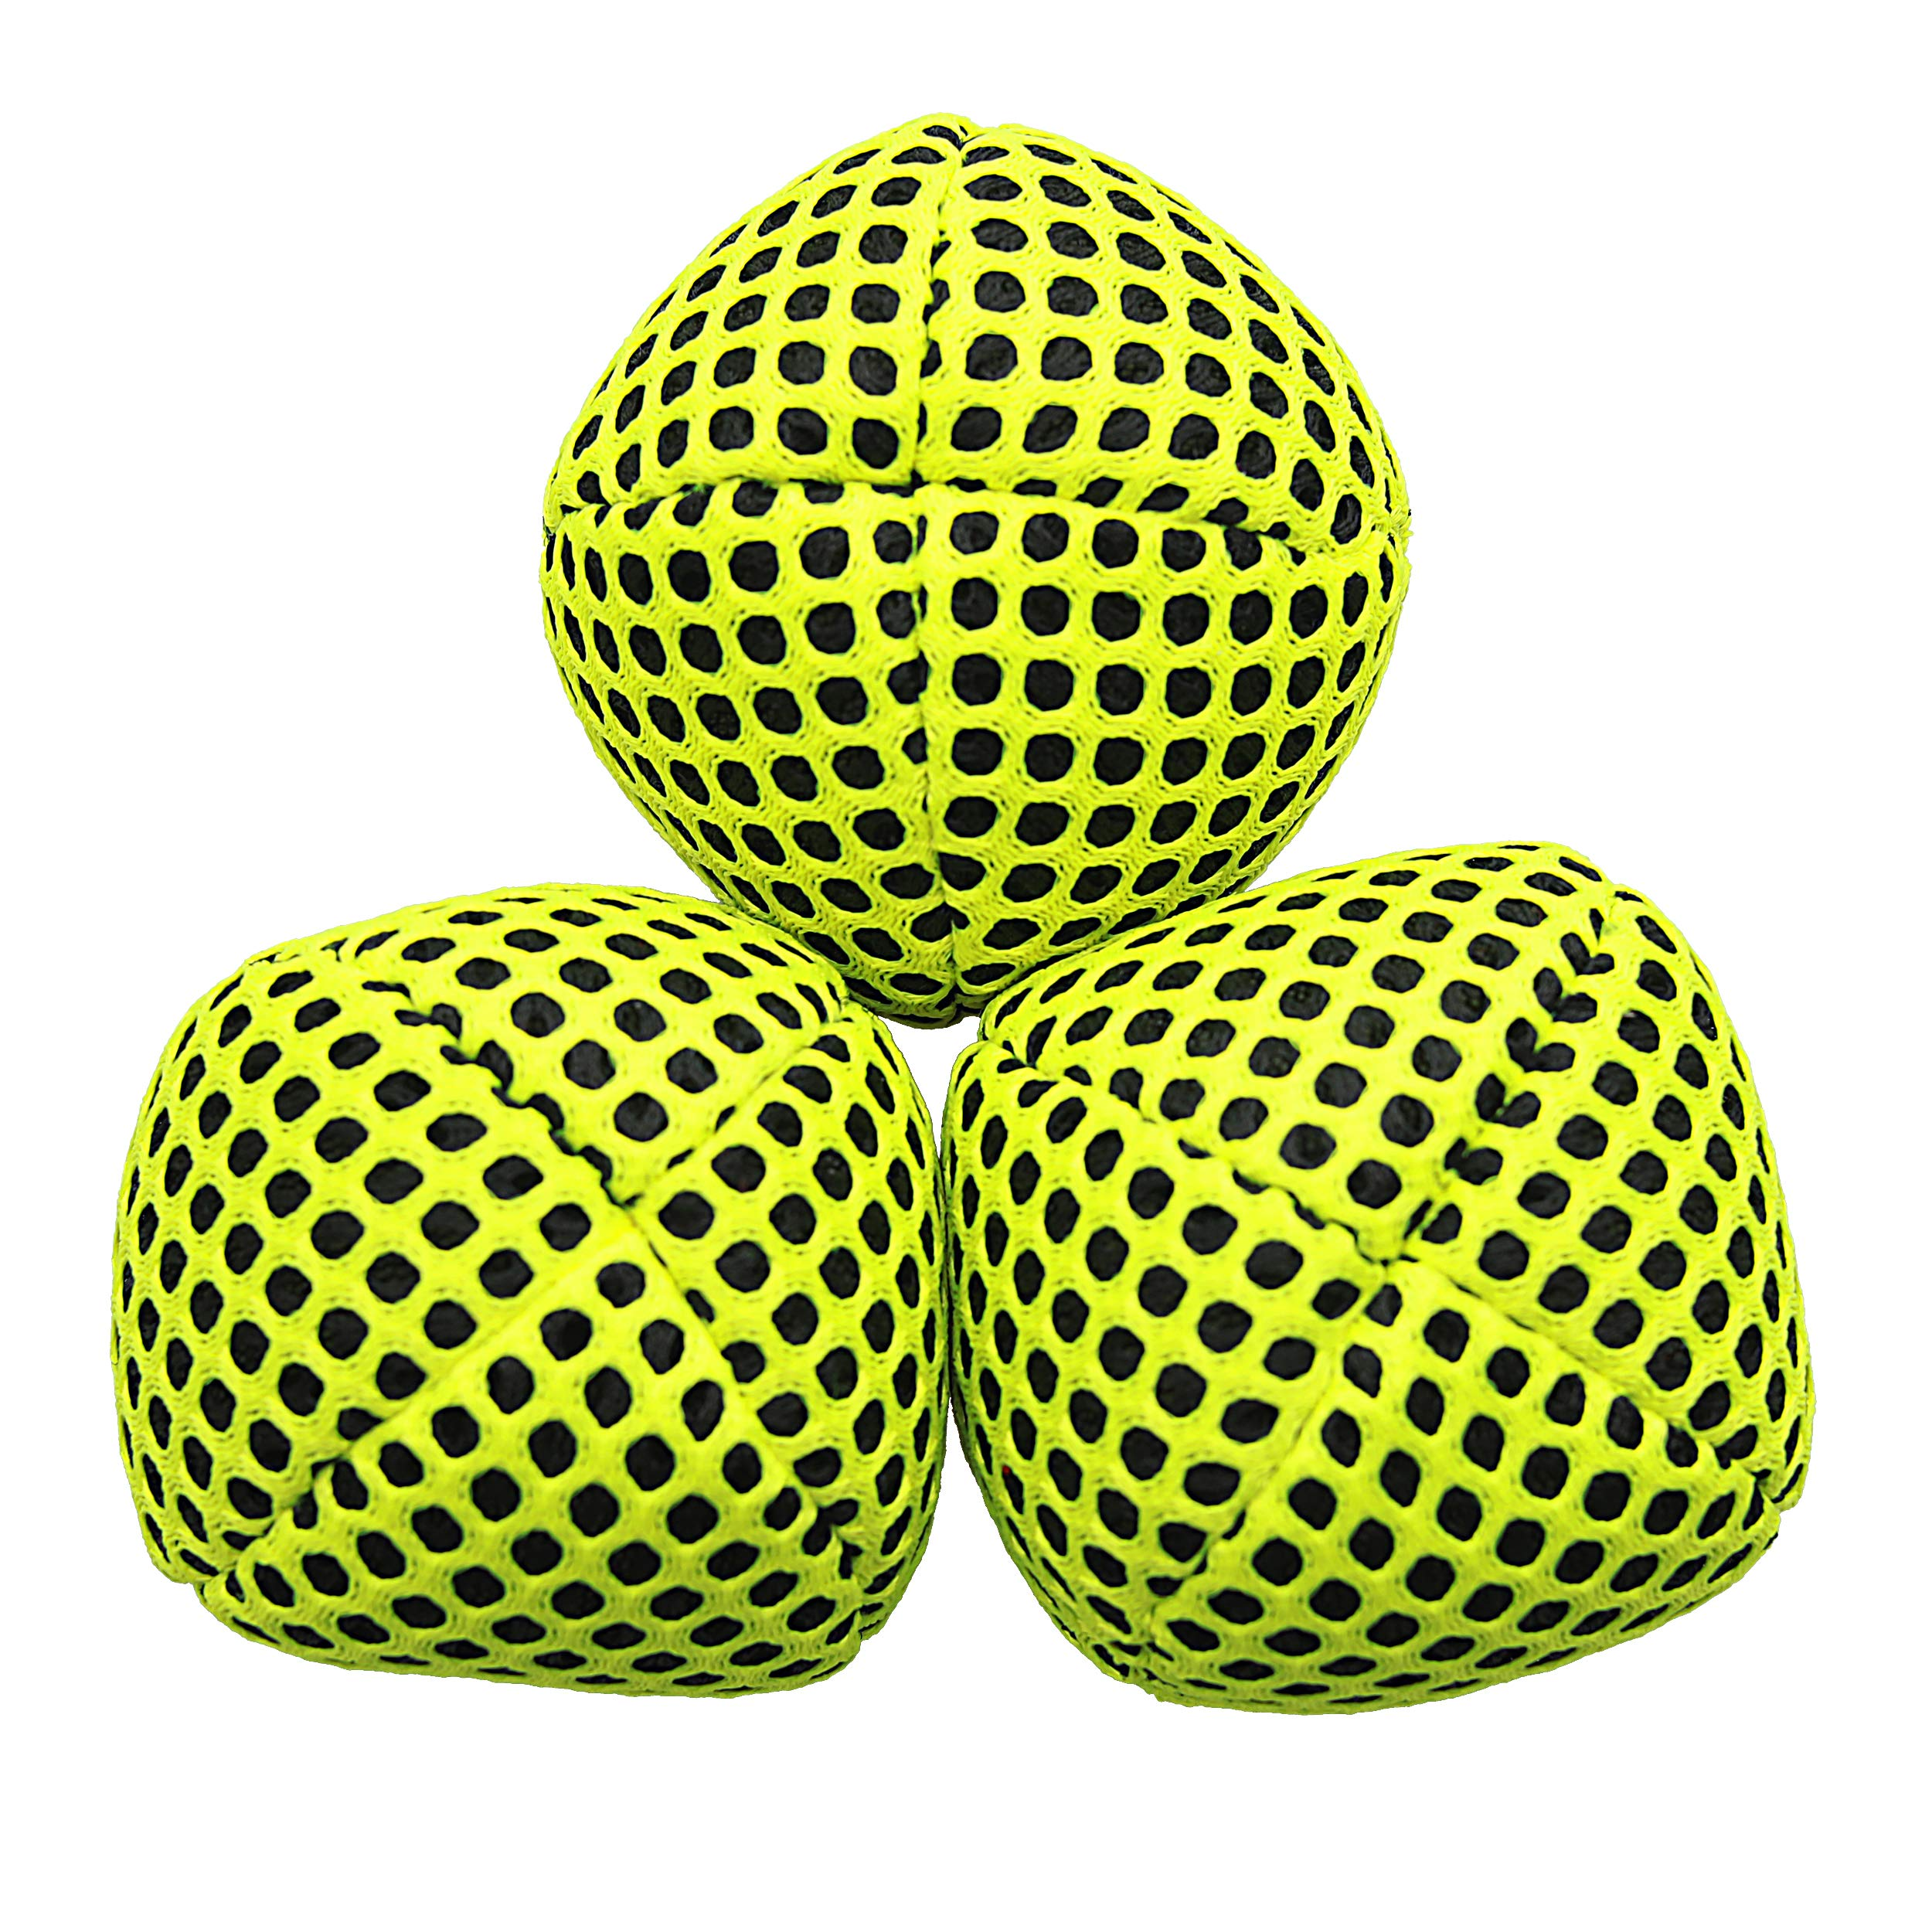 Speevers Juggling Balls for Beginners and Professional, 2019 XBalls Set of 3 Fresh Design - 5 Beautiful Uni Colors Available, 2 Layers of Net Carry Case, Choice of The World Champions 120g (Yellow) by Speevers